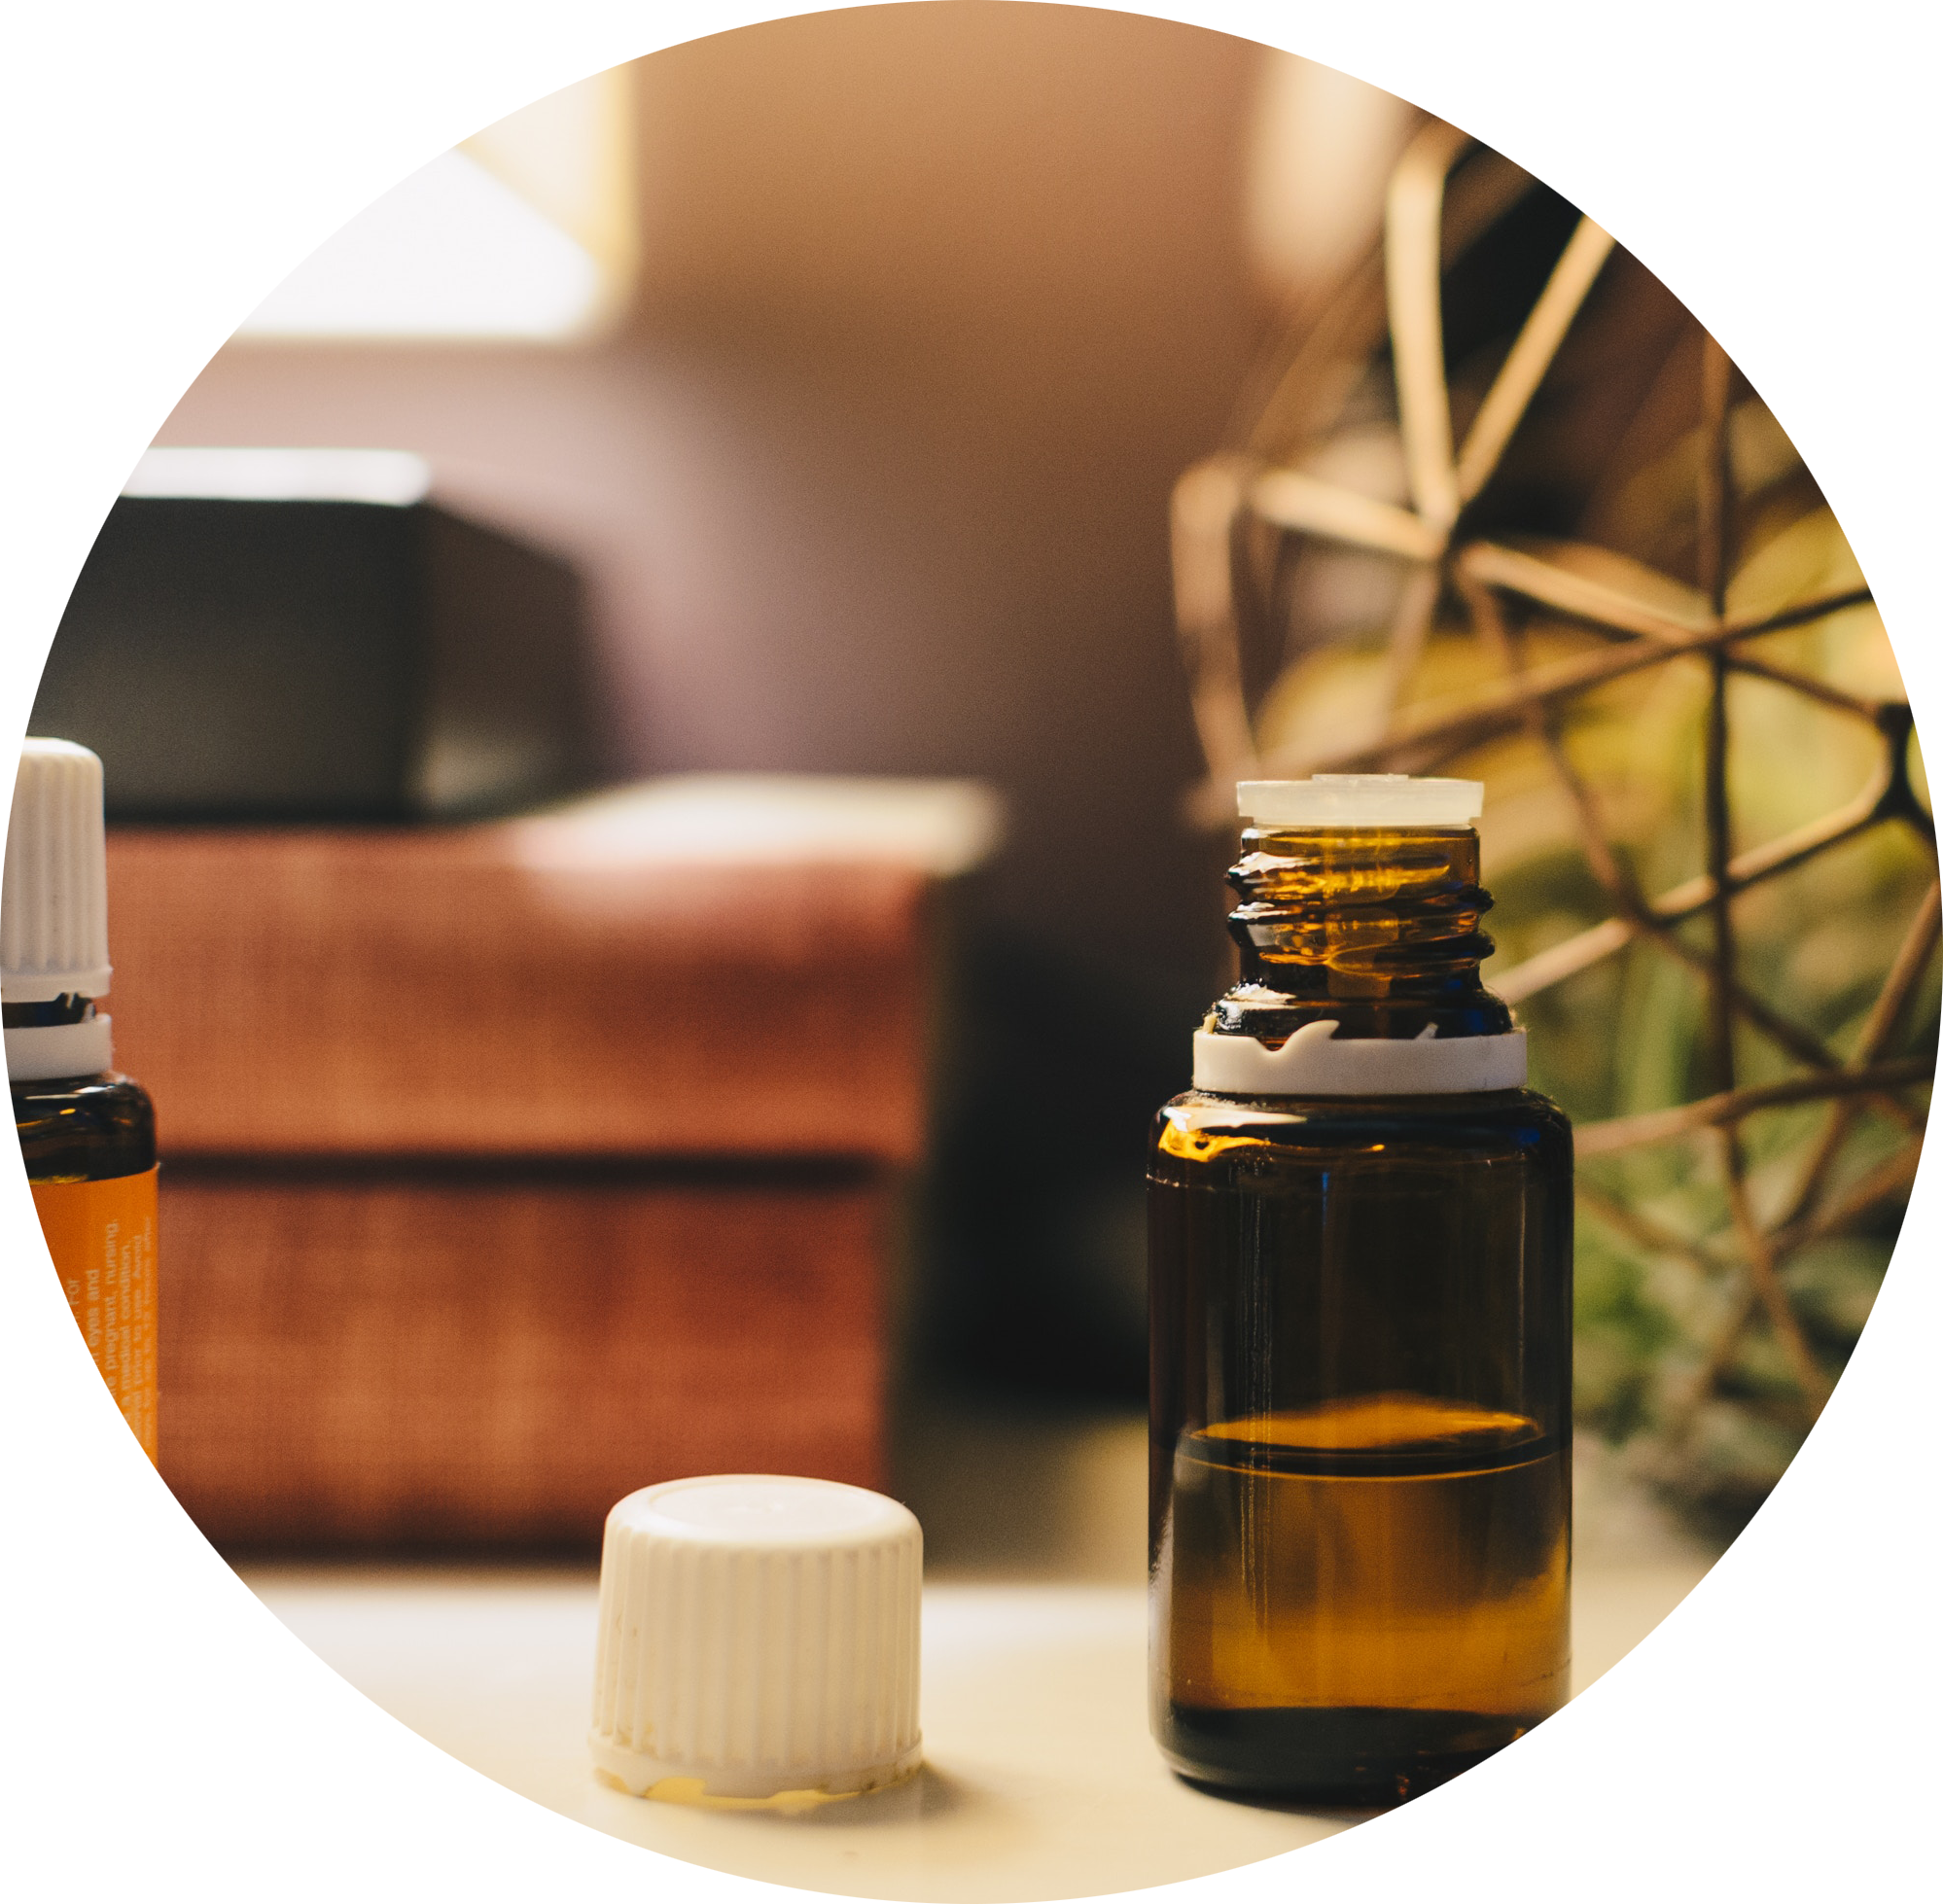 Aromatherapy - Aromatherapy uses essential oils topically, which are then absorbed or inhaled, creating subtle changes in the brain. I have studied the use of essential oils to enhance acupuncture treatments and use high-quality essential oils in the practice.